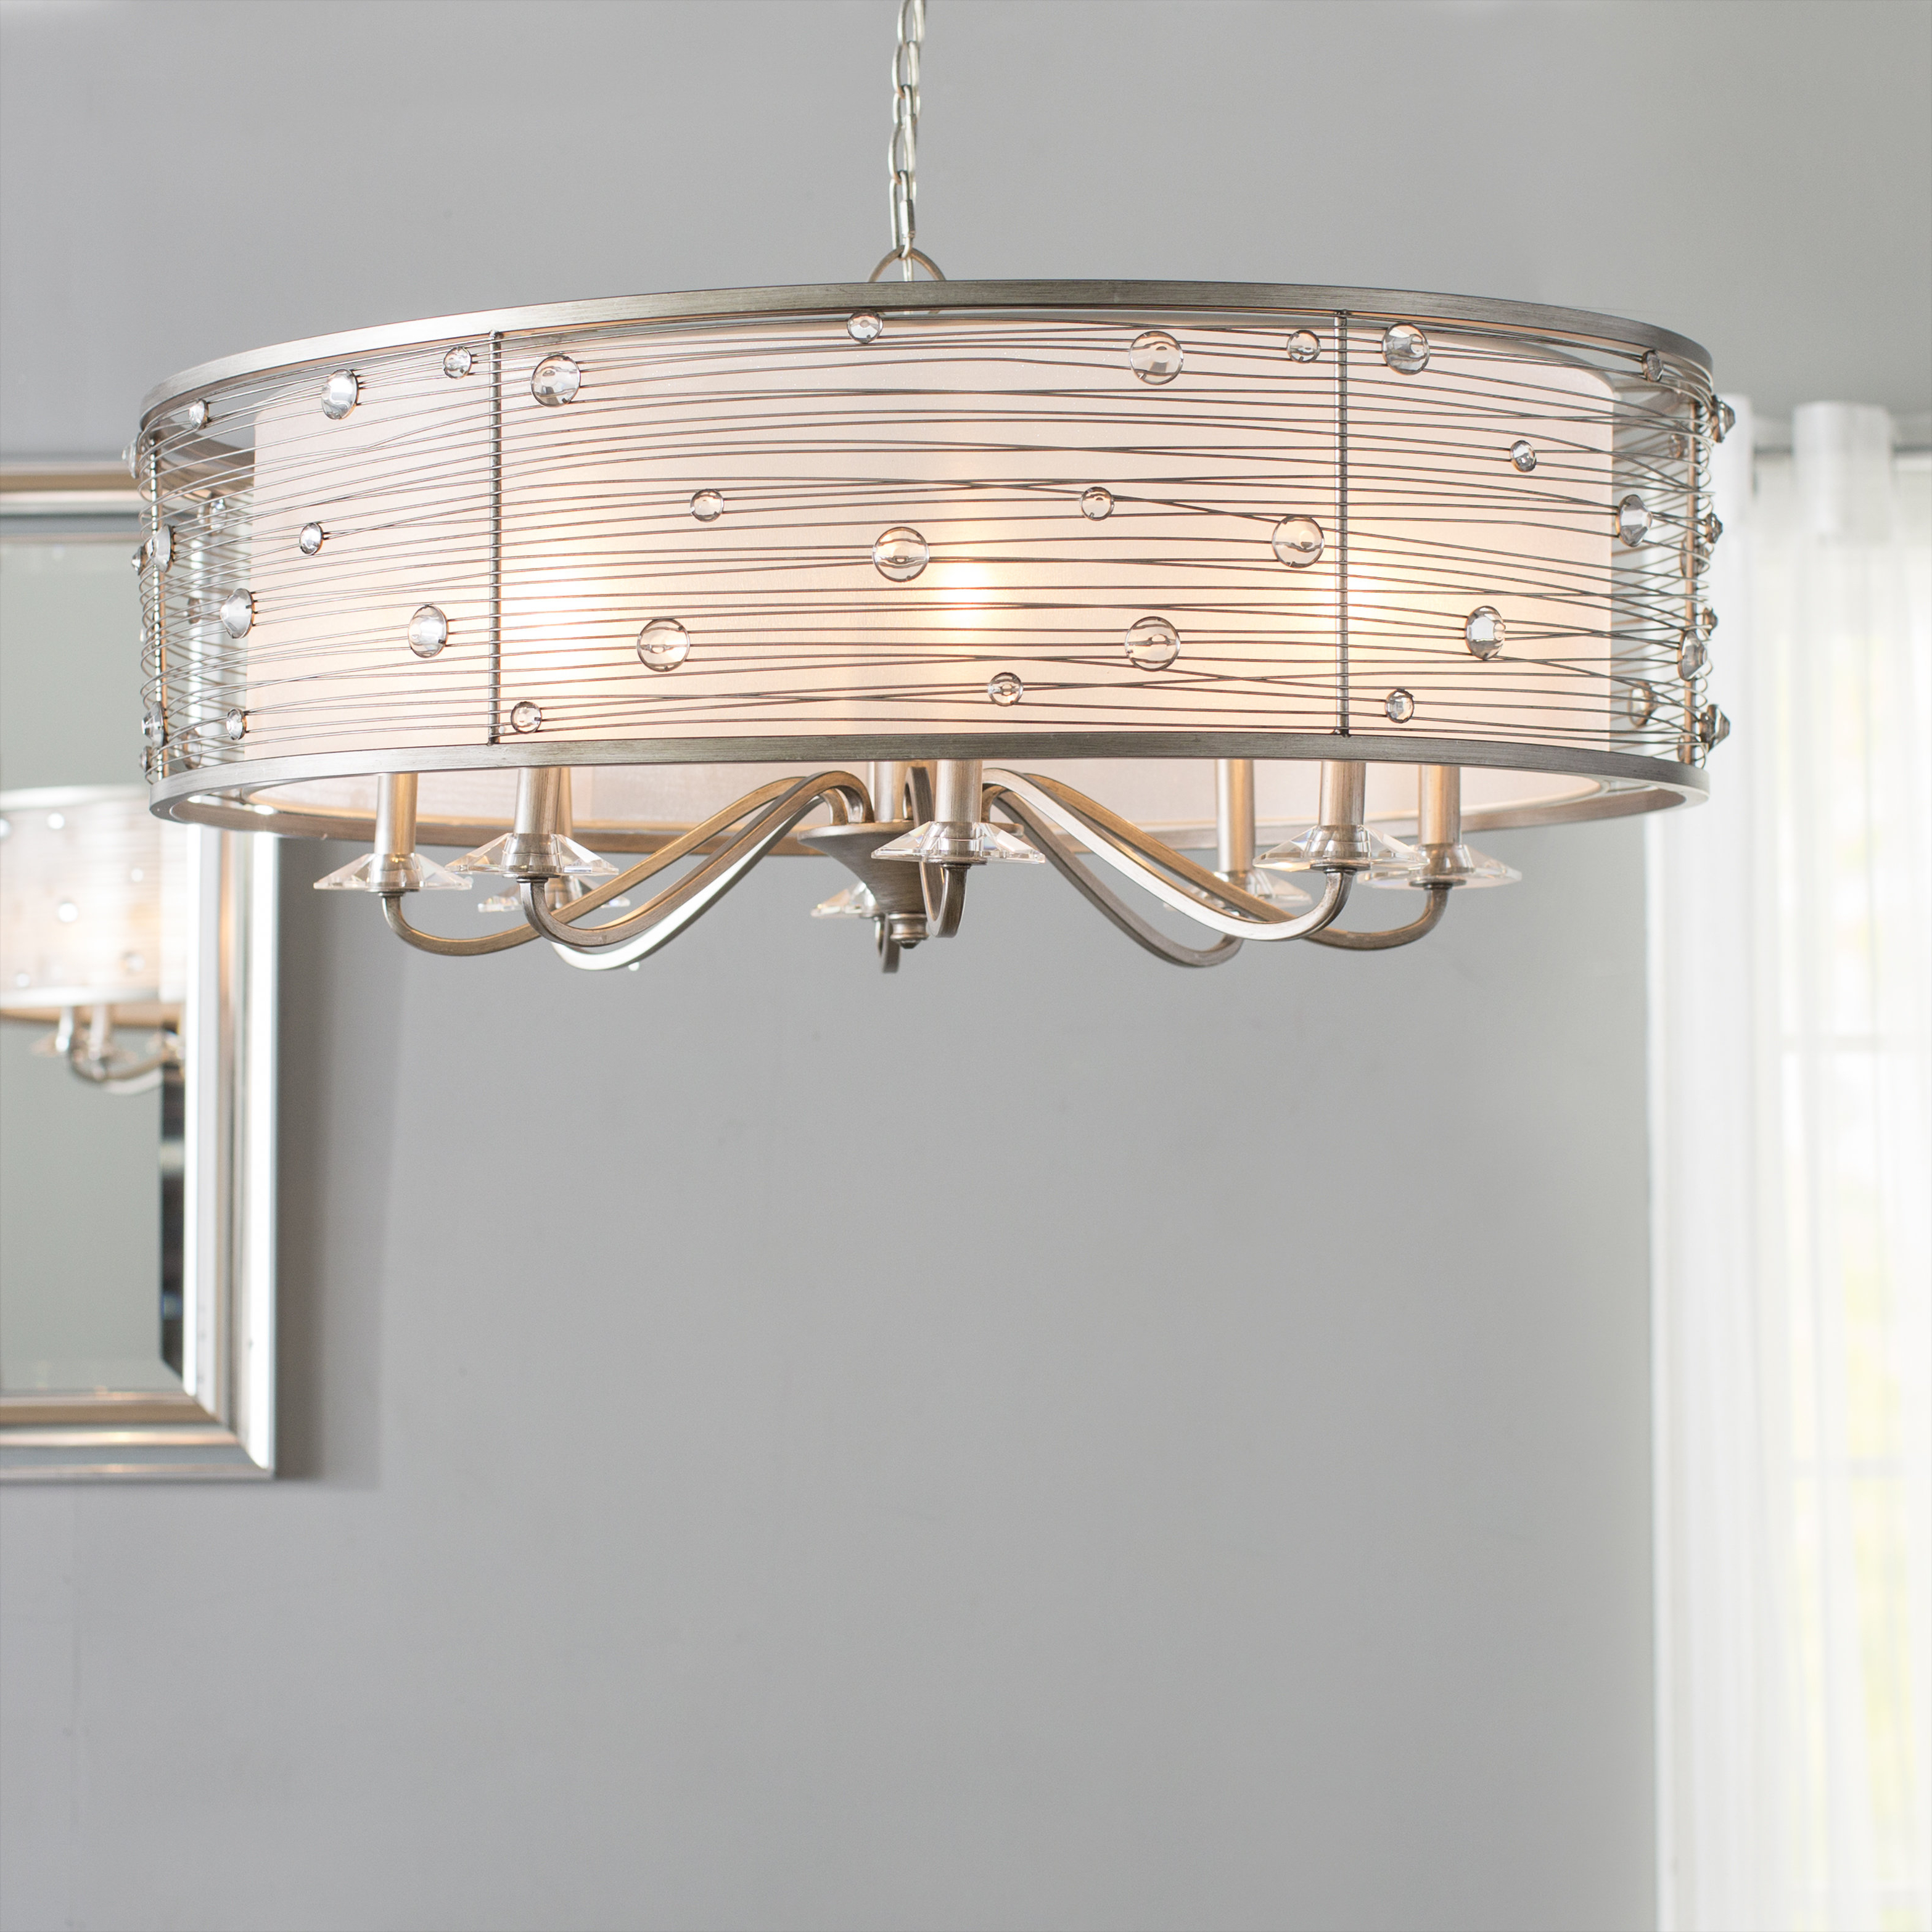 Hermione 1 Light Single Drum Pendants Within Popular Hermione 8 Light Drum Chandelier (Gallery 7 of 25)